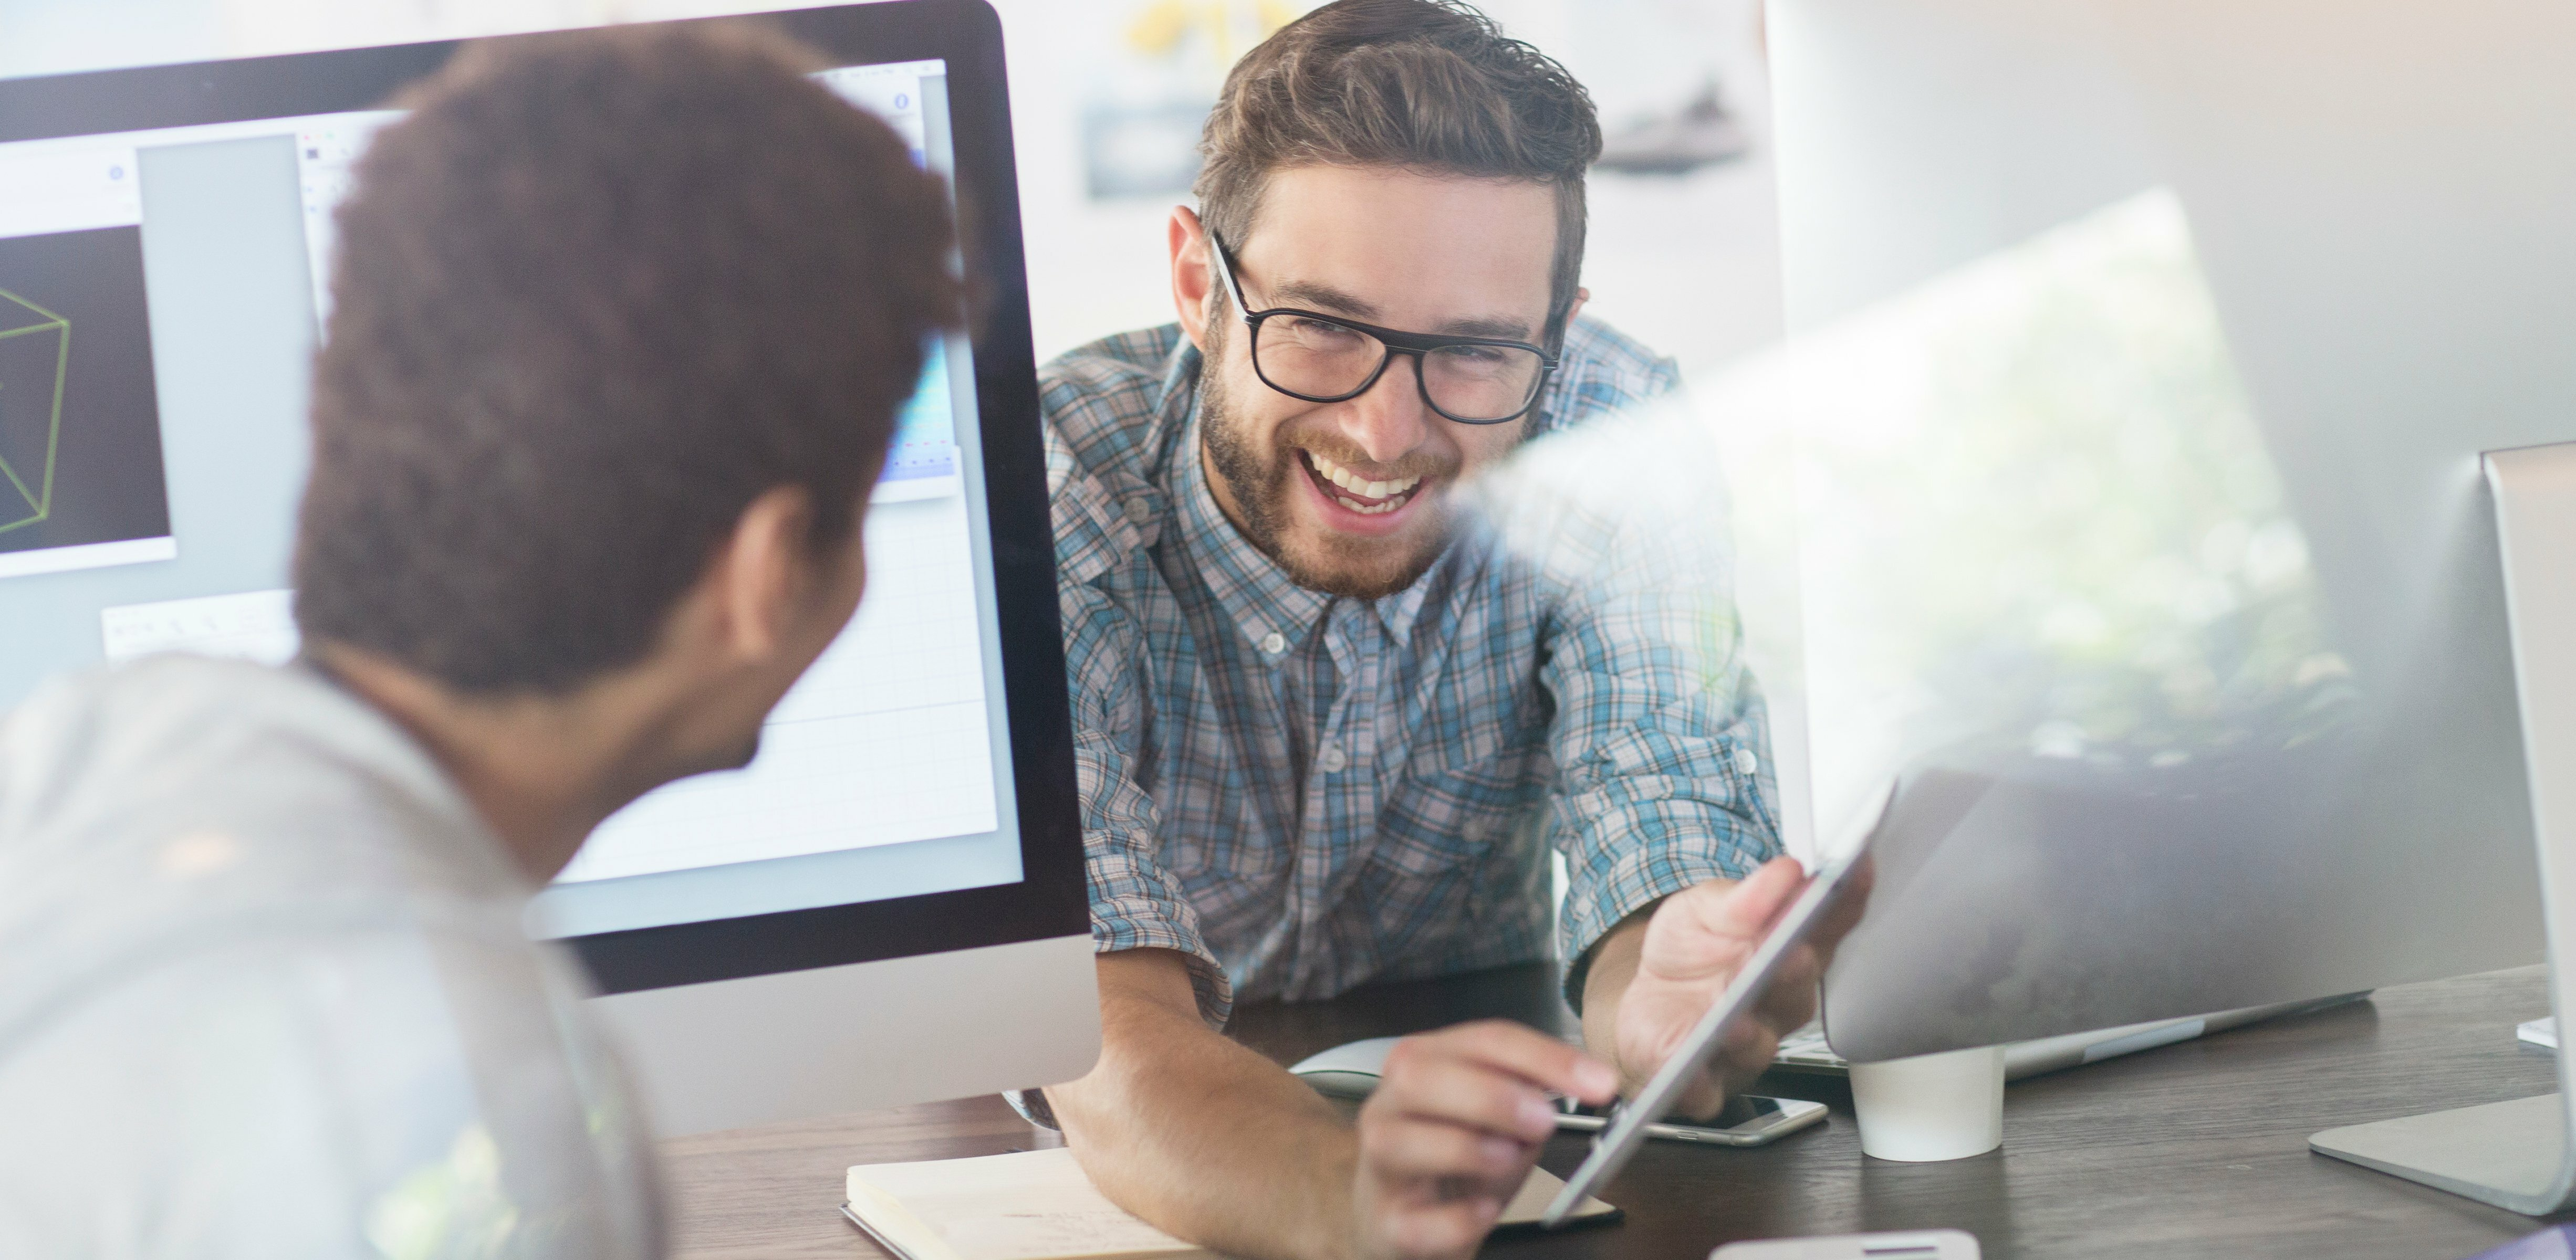 5 Times Smart People Ask Others to Double-Check Their Work